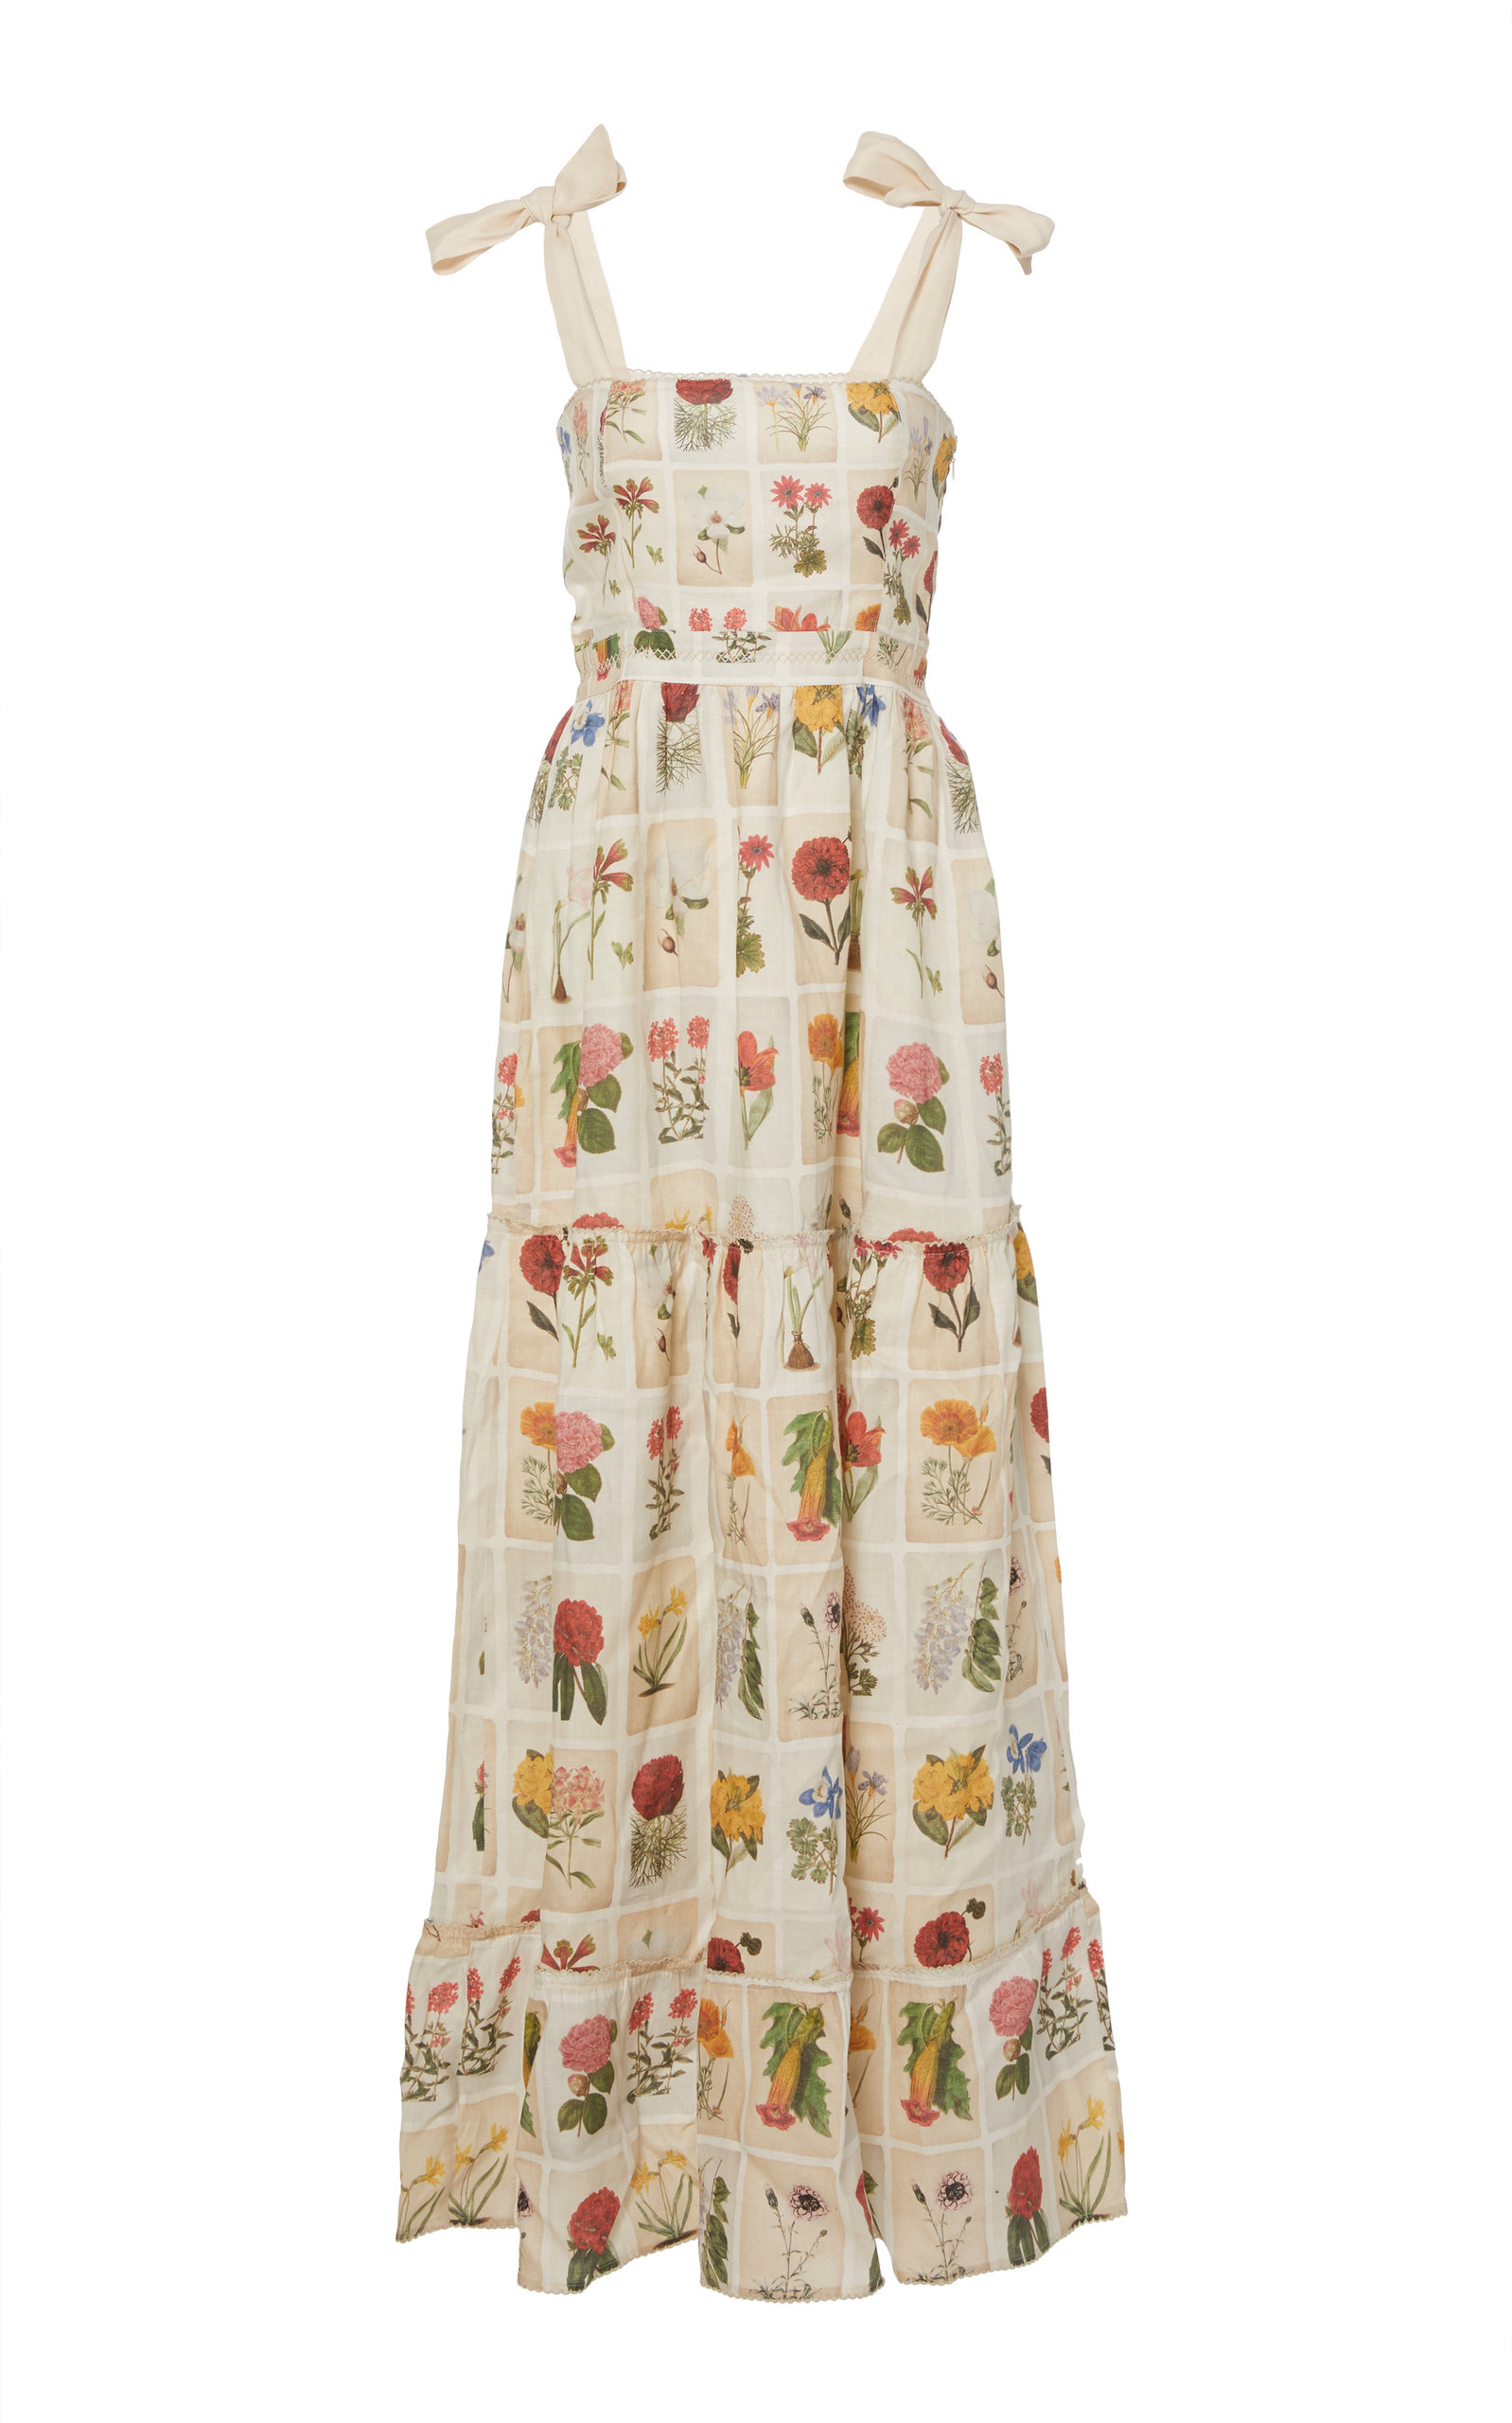 AGUA BY AGUA BENDITA Herbarium Embroidered Printed Linen Dress in Multi